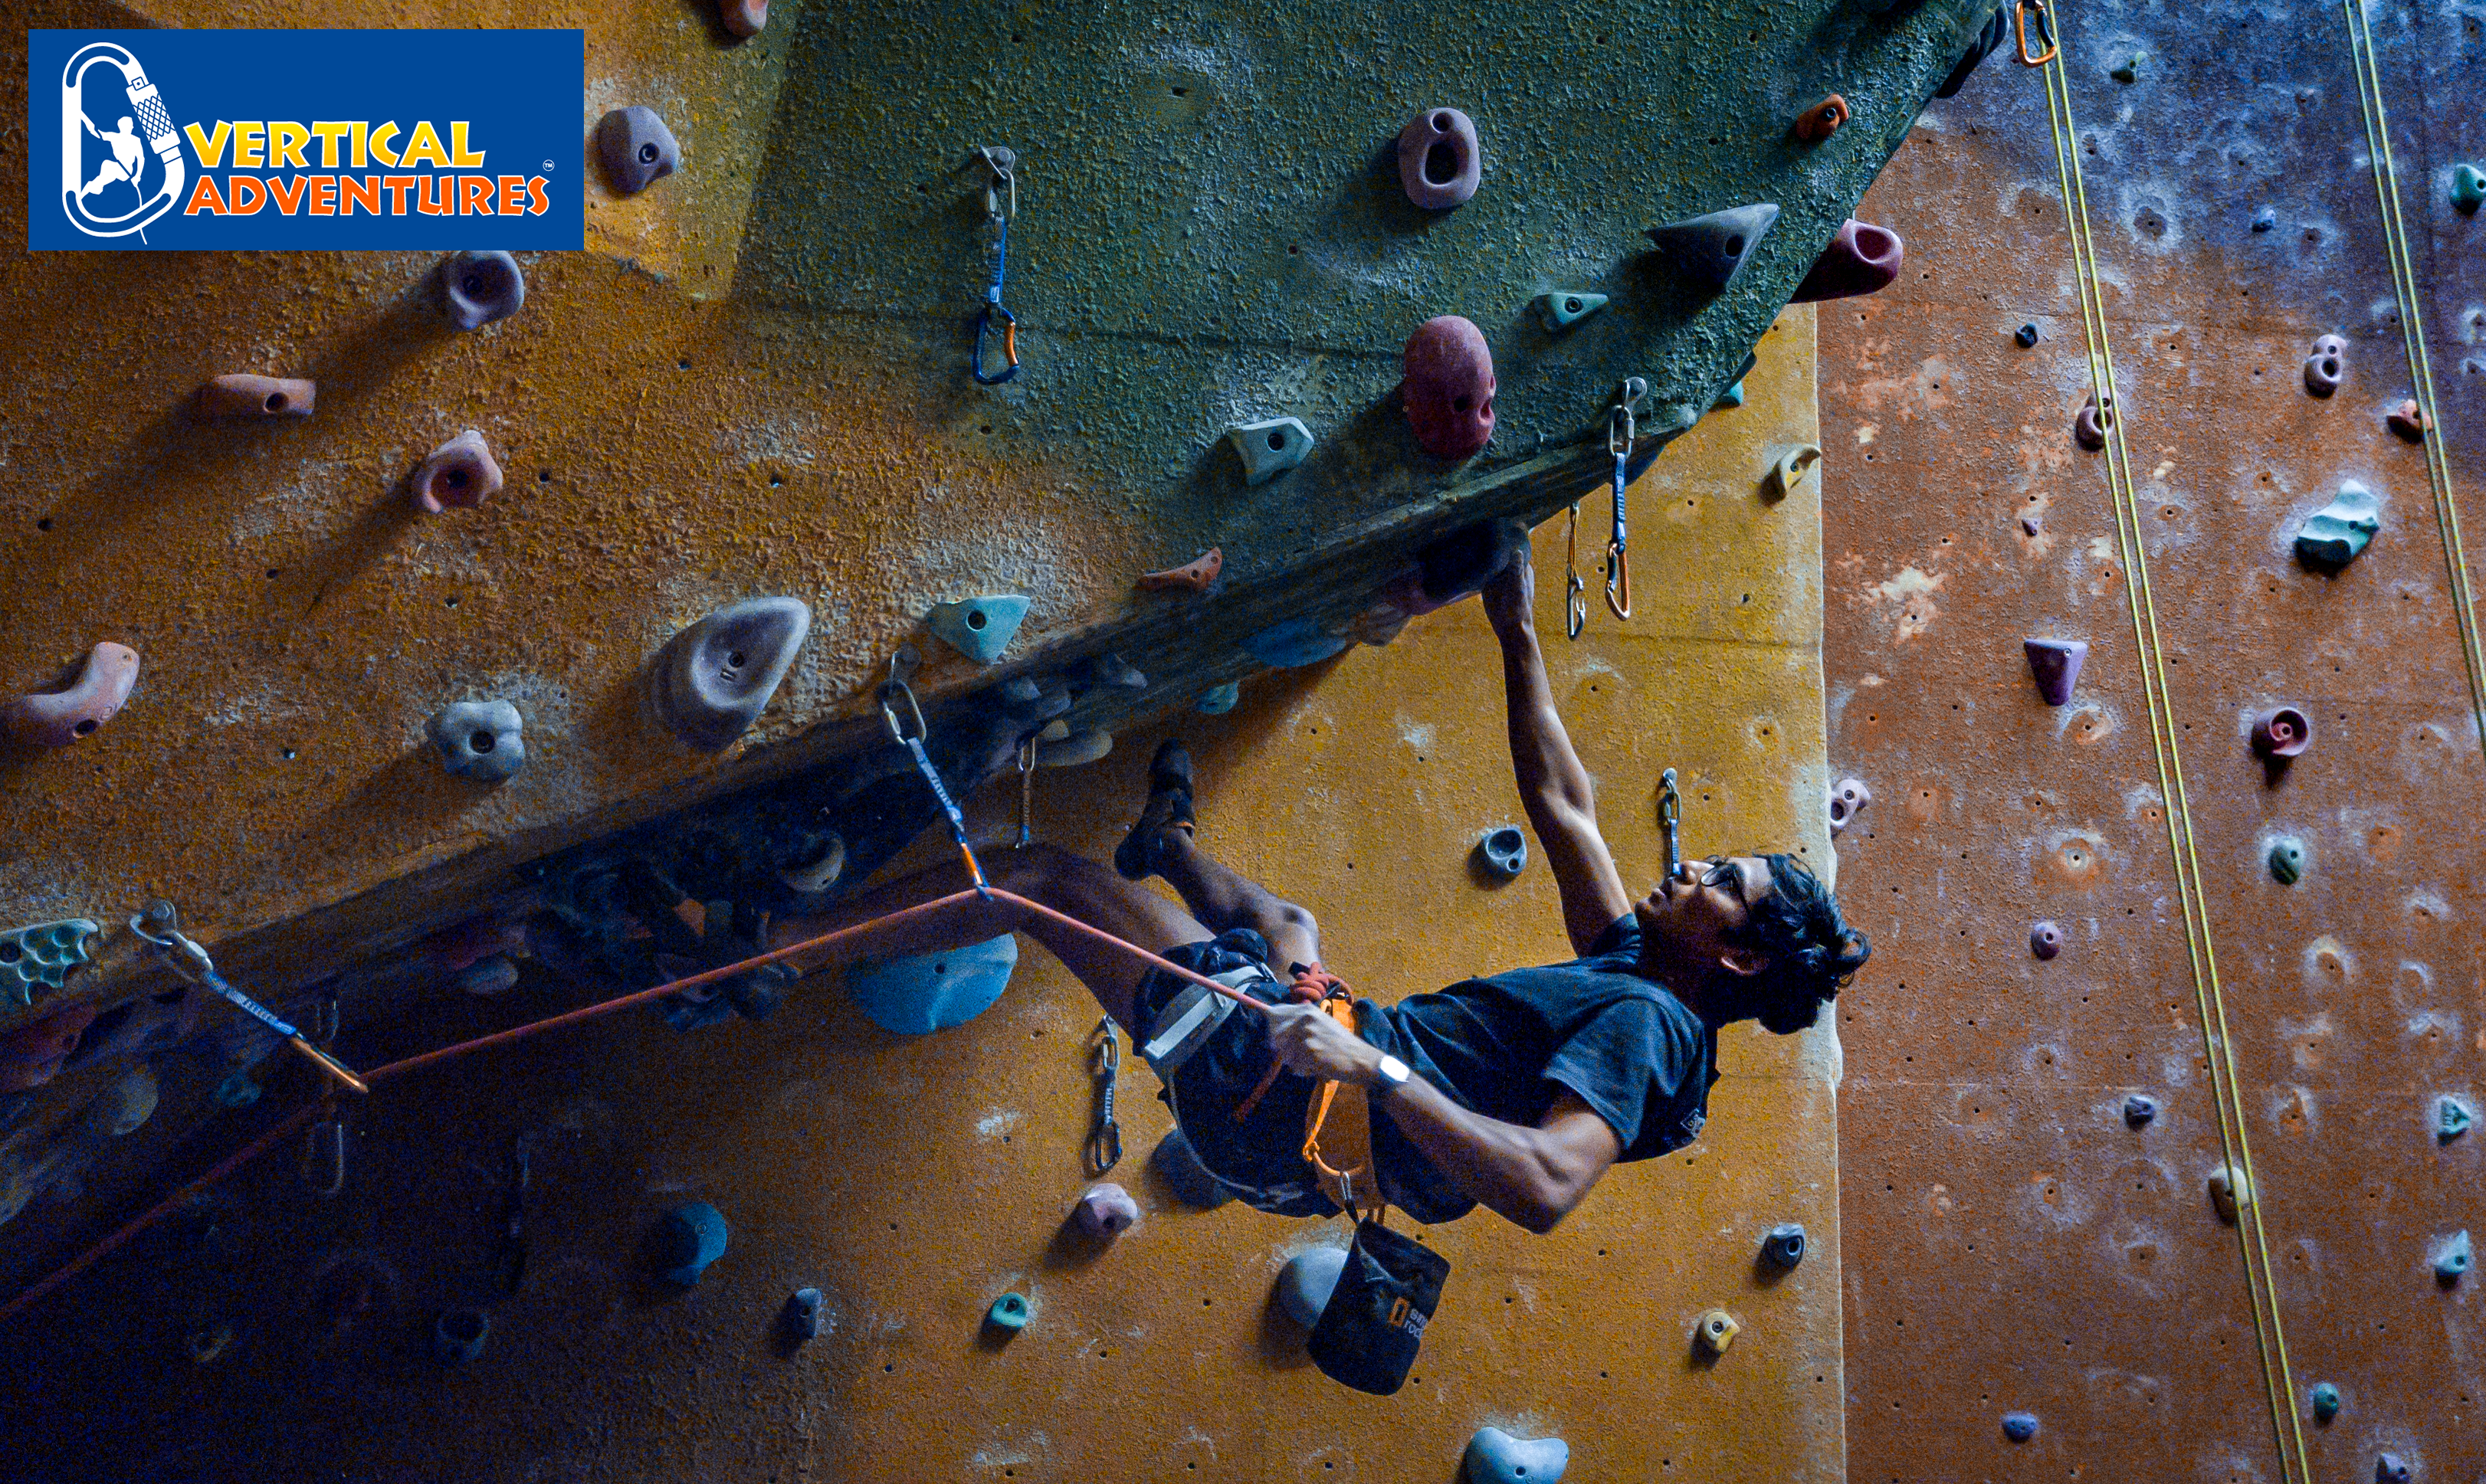 person climbing on an indoor wall at Vertical Adventures Auckland